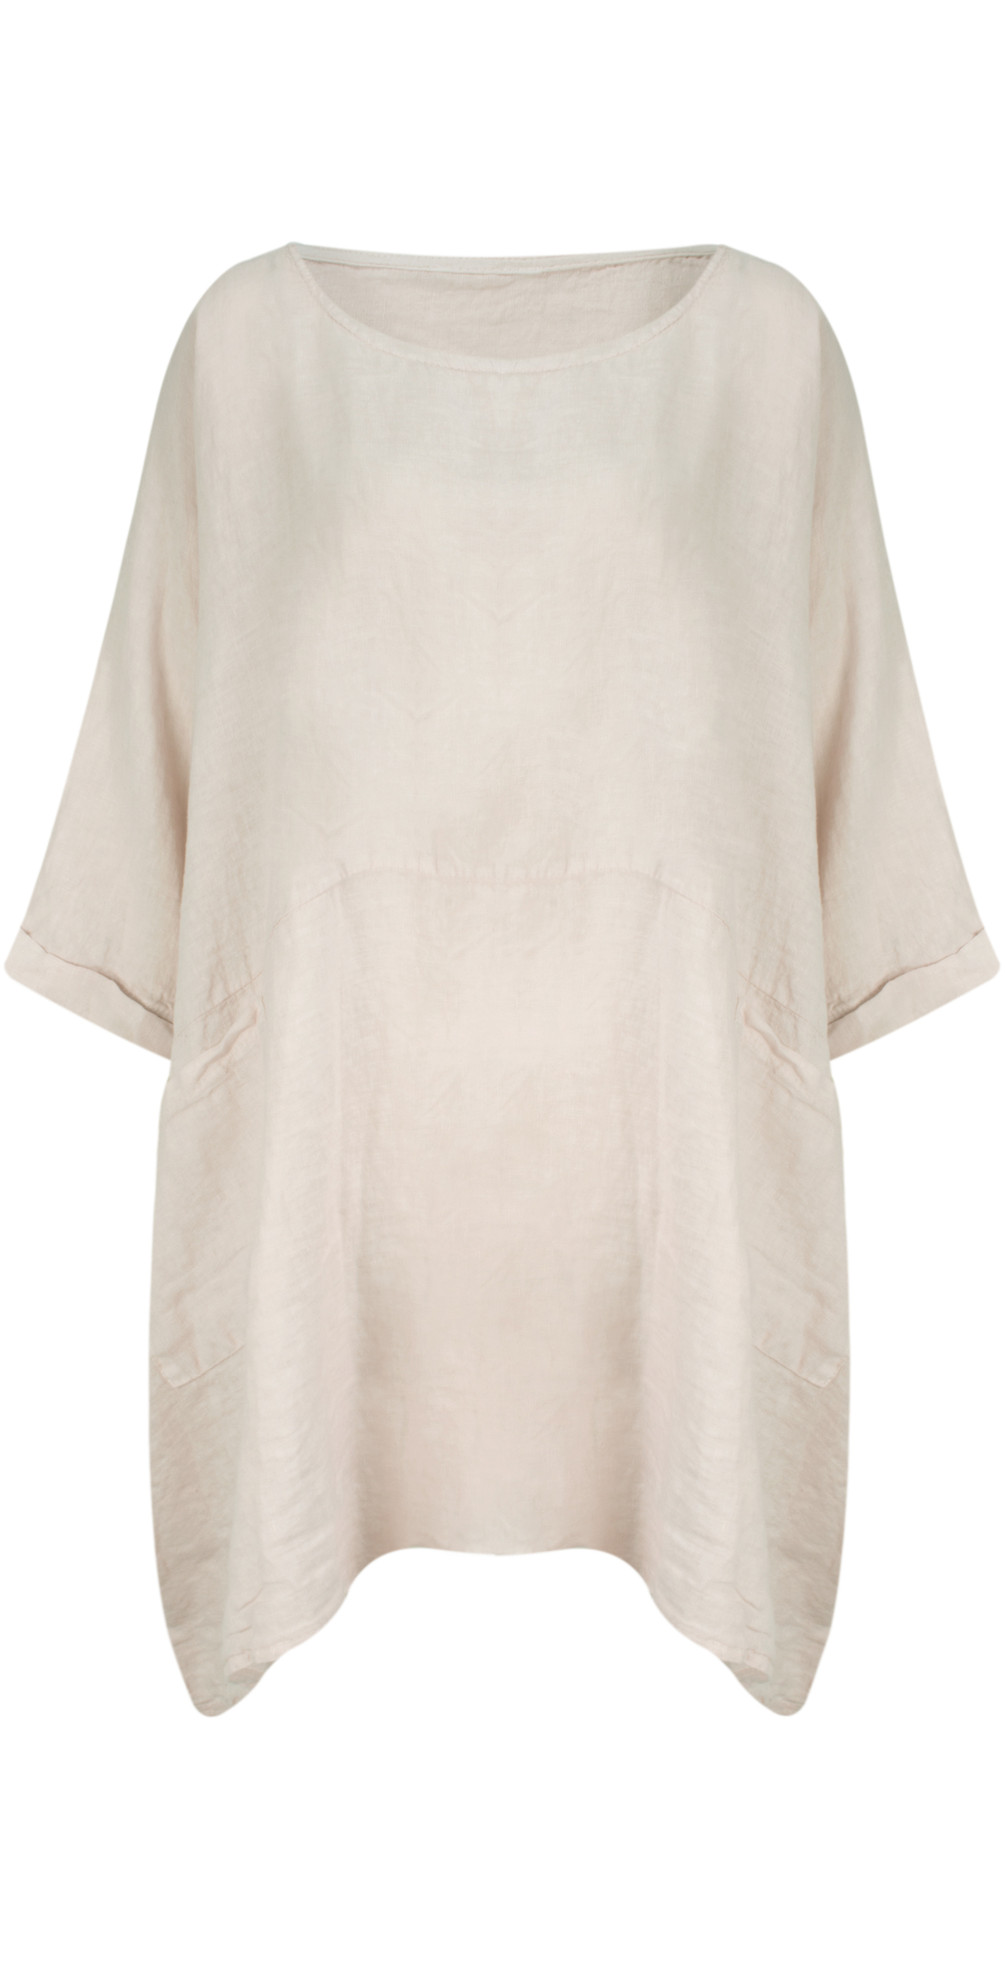 Dessie Oversized Tunic with Pocket main image